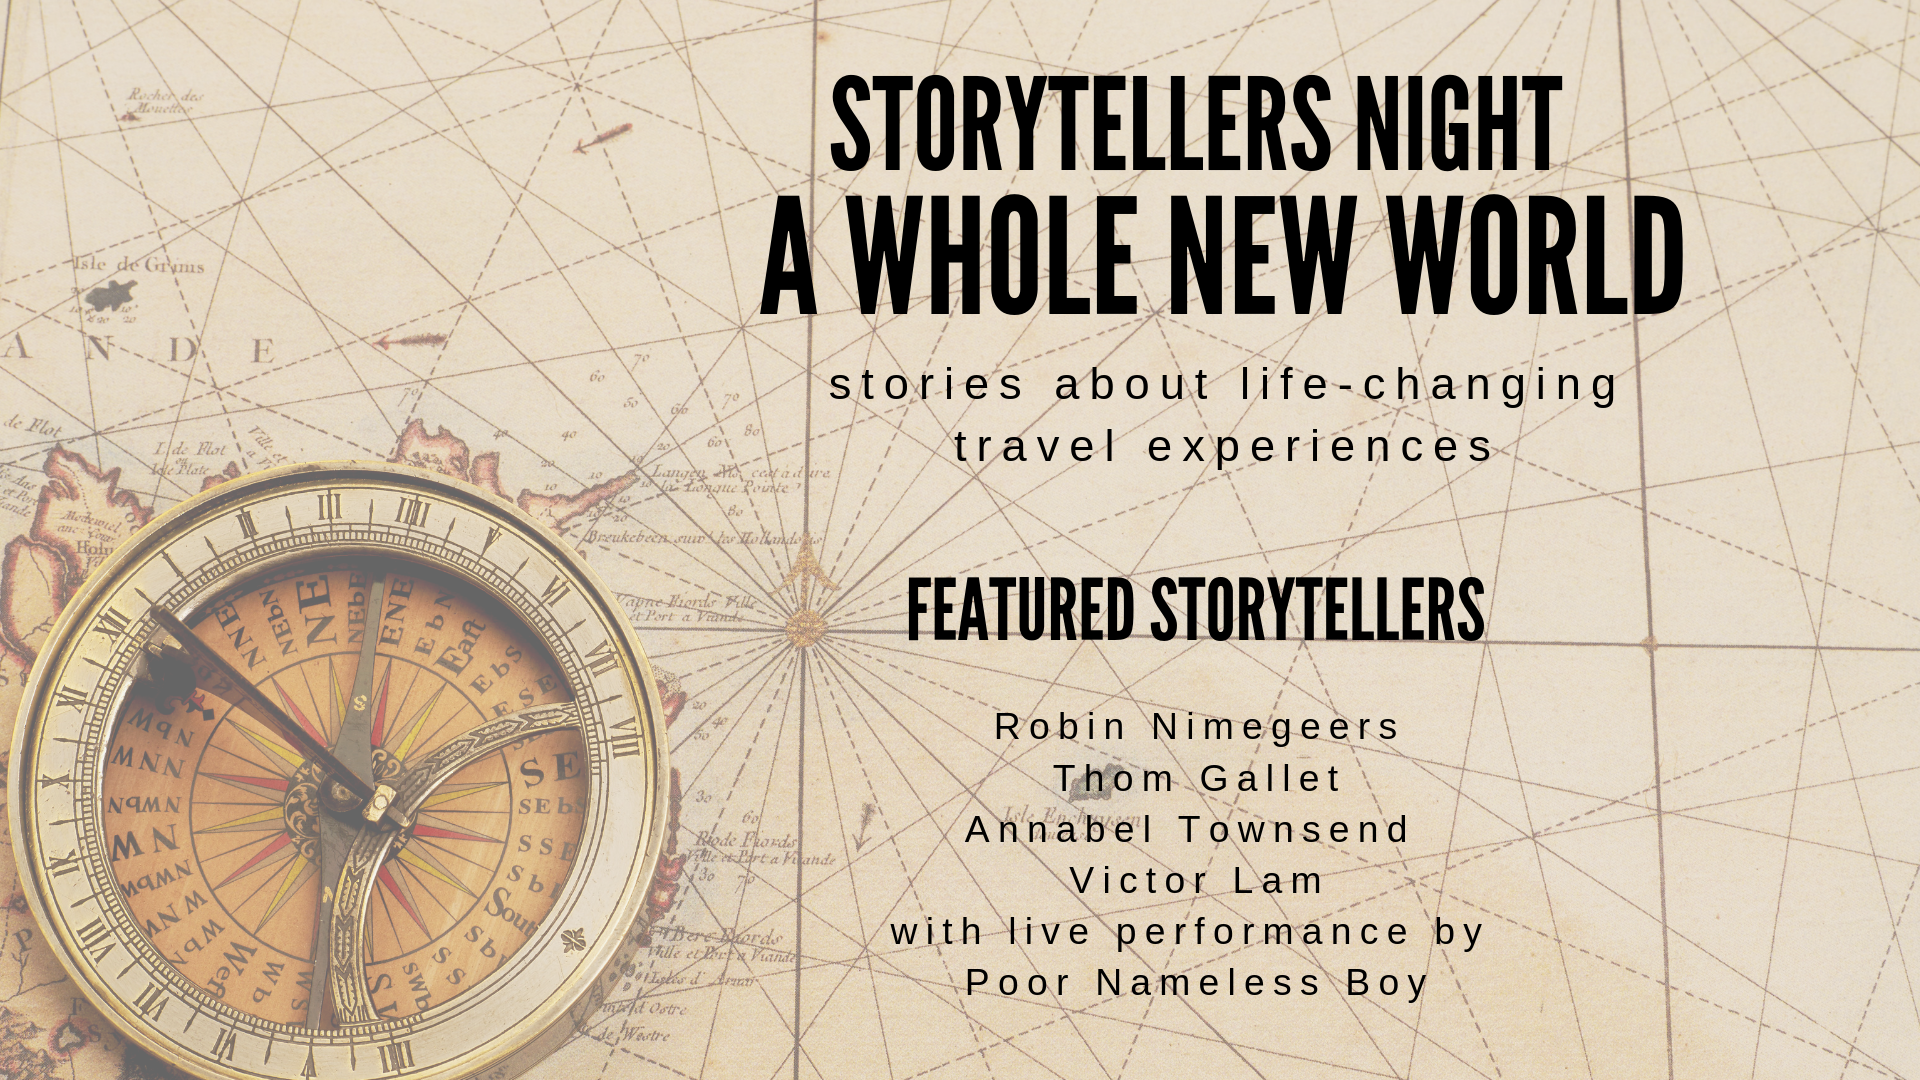 Storytellers Night: A Whole New World